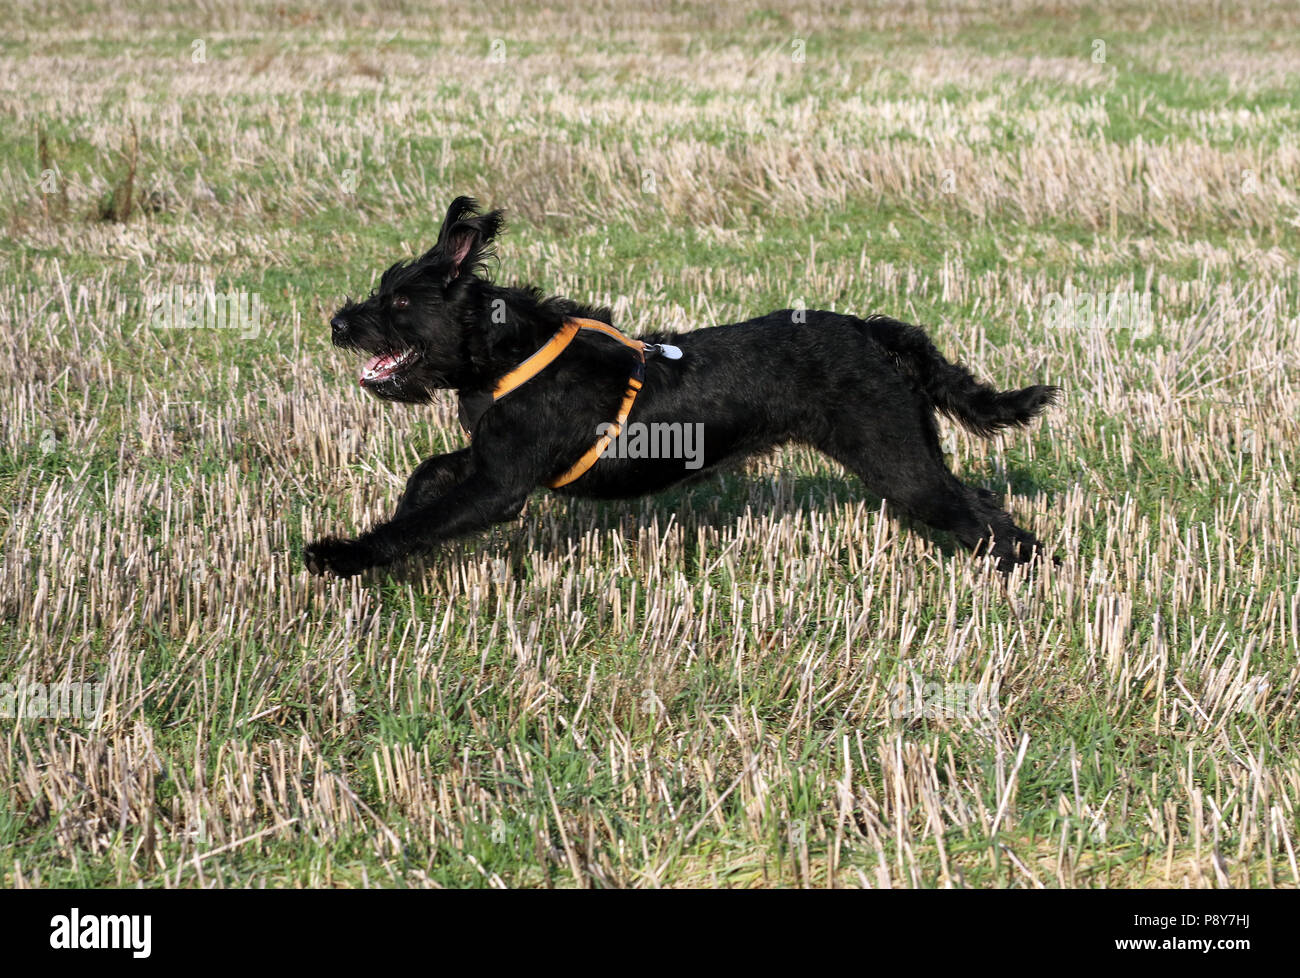 Neustadt (Dosse), Germany, Riesenschnauzer is running over a stubble field - Stock Image